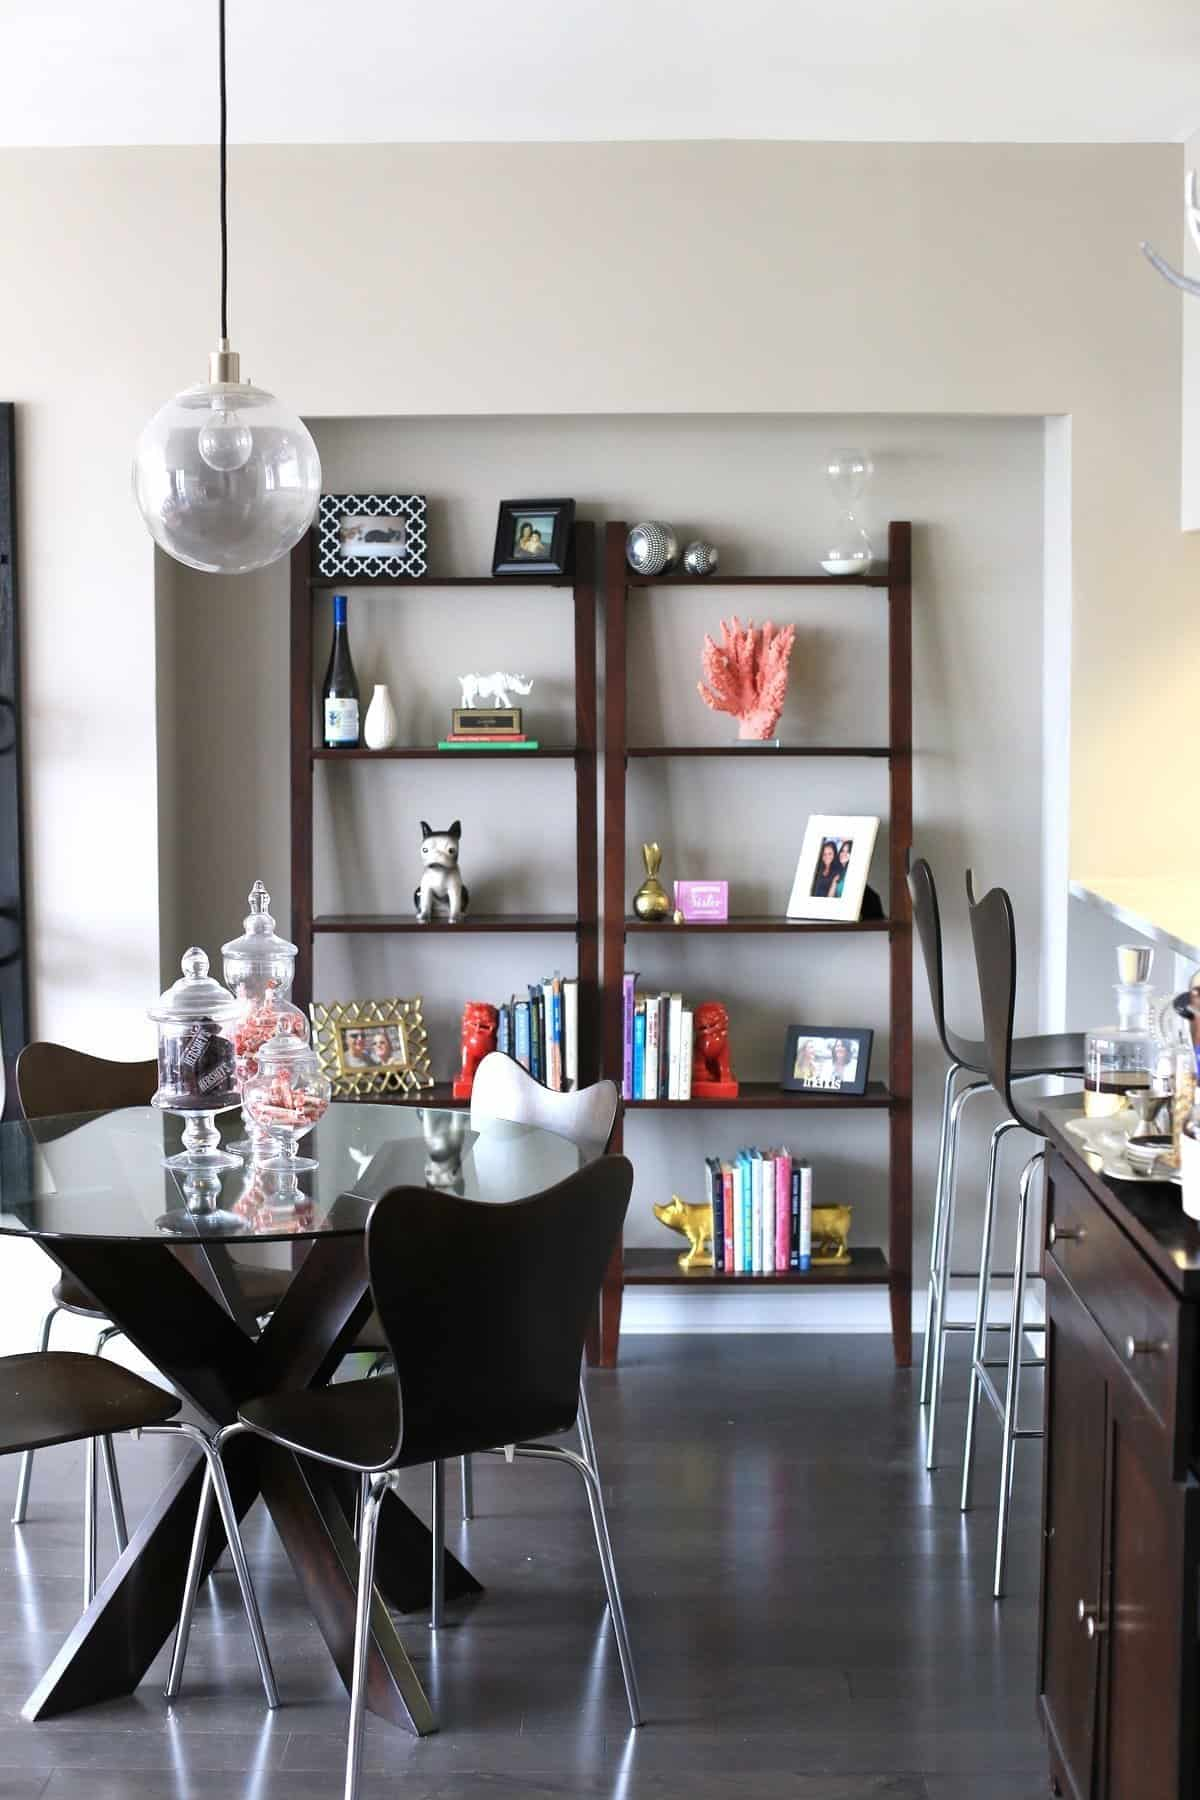 mohawk floors review, dining room ideas, small space dining areas - @mystylevita - 1